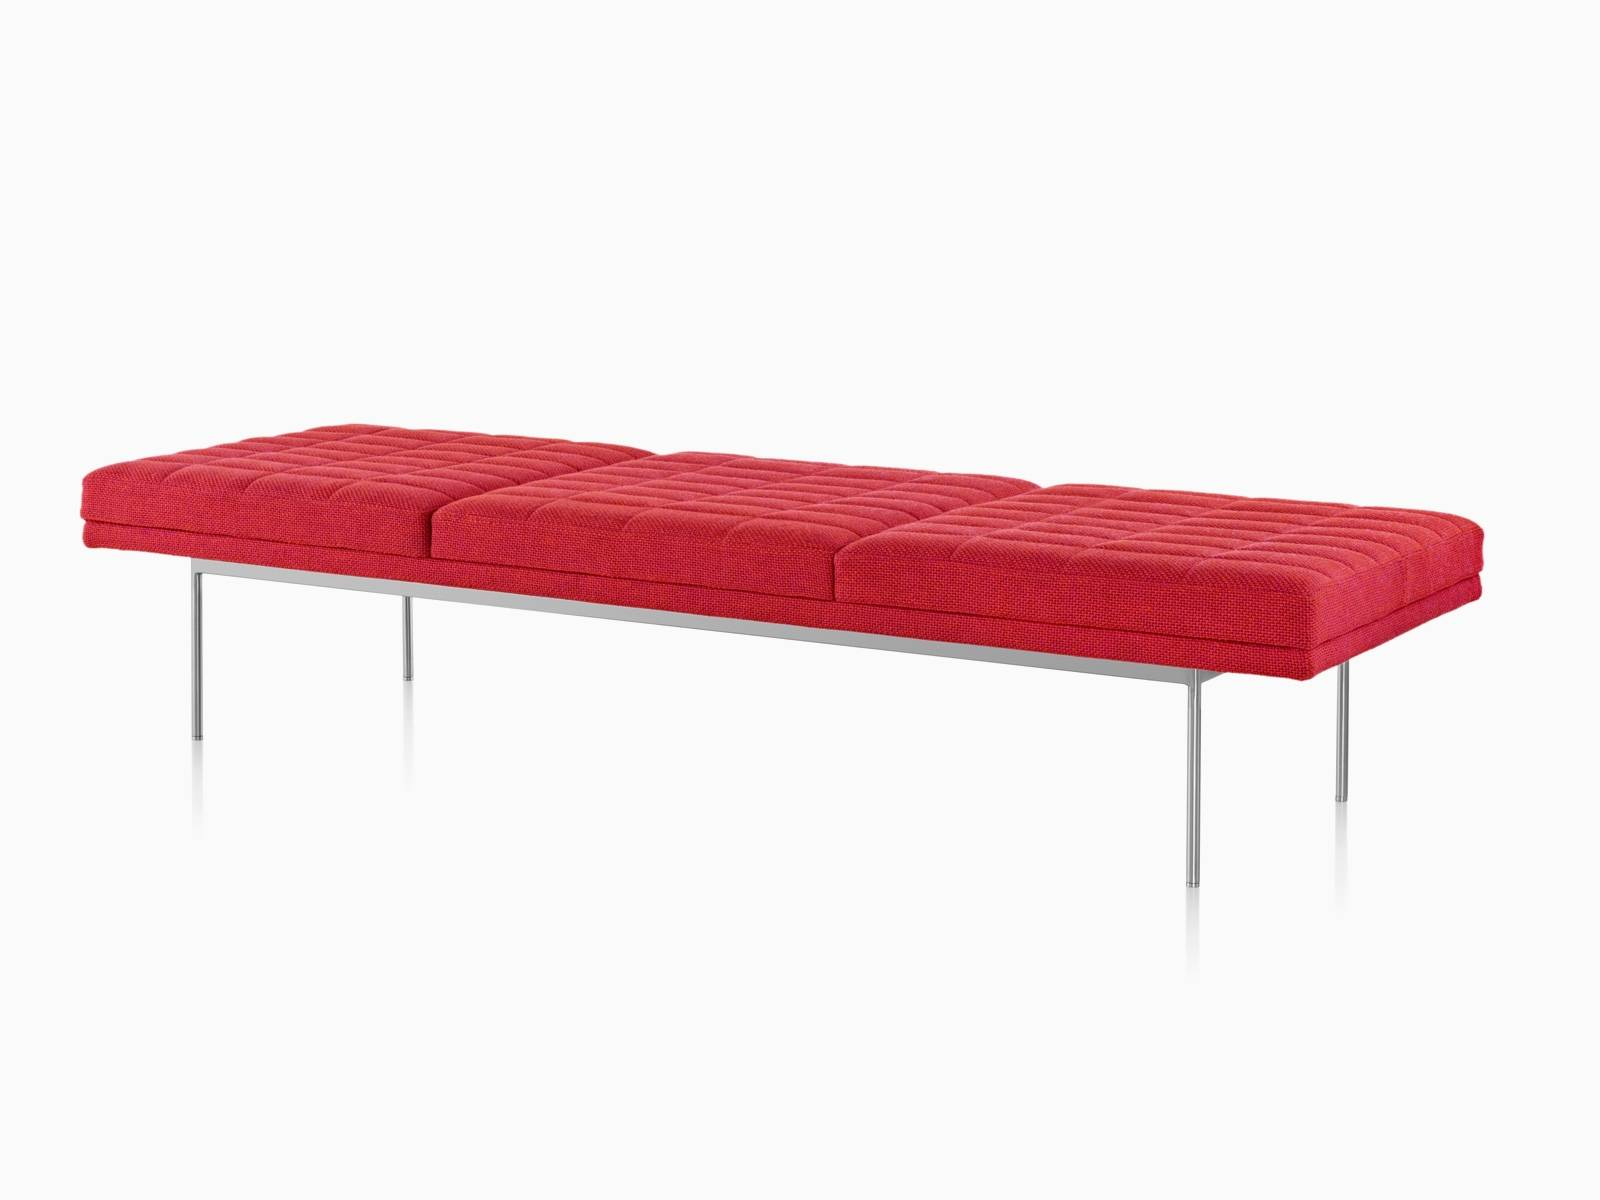 Red Tuxedo Bench with quilted upholstery bright chrome base, viewed from the front at an angle.